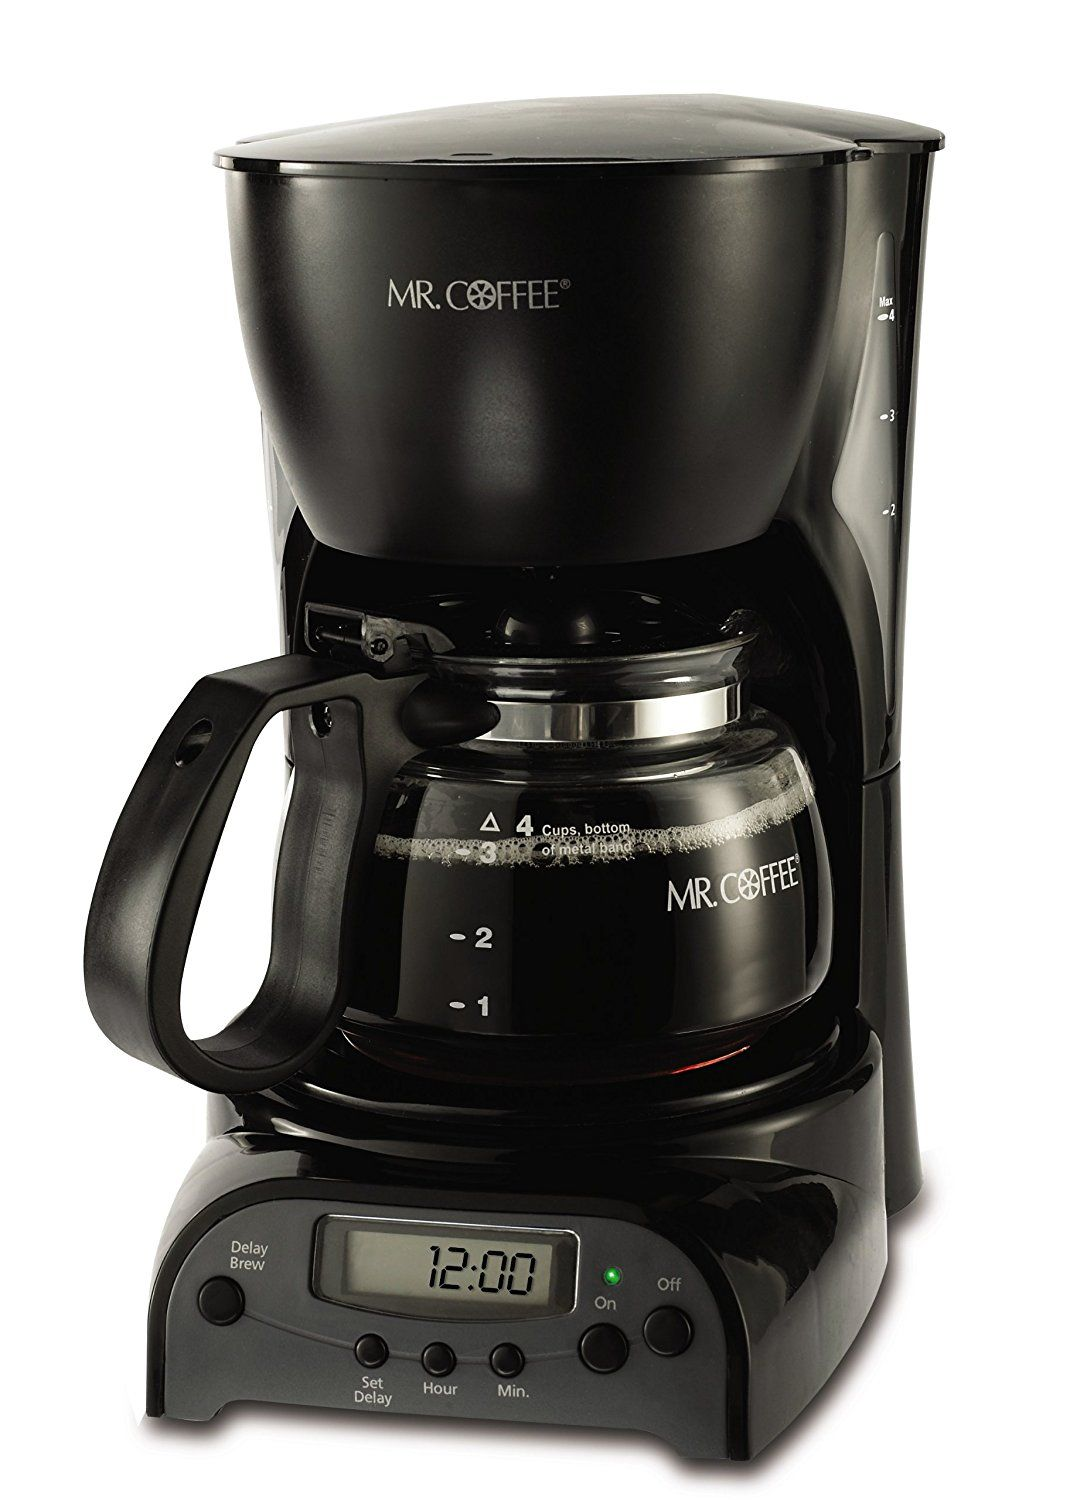 Mr Coffee 4 Cup Coffee Maker Want Additional Info Click On The Image Coffeemakers 4 Cup Coffee Maker Best Coffee Maker Mr Coffee